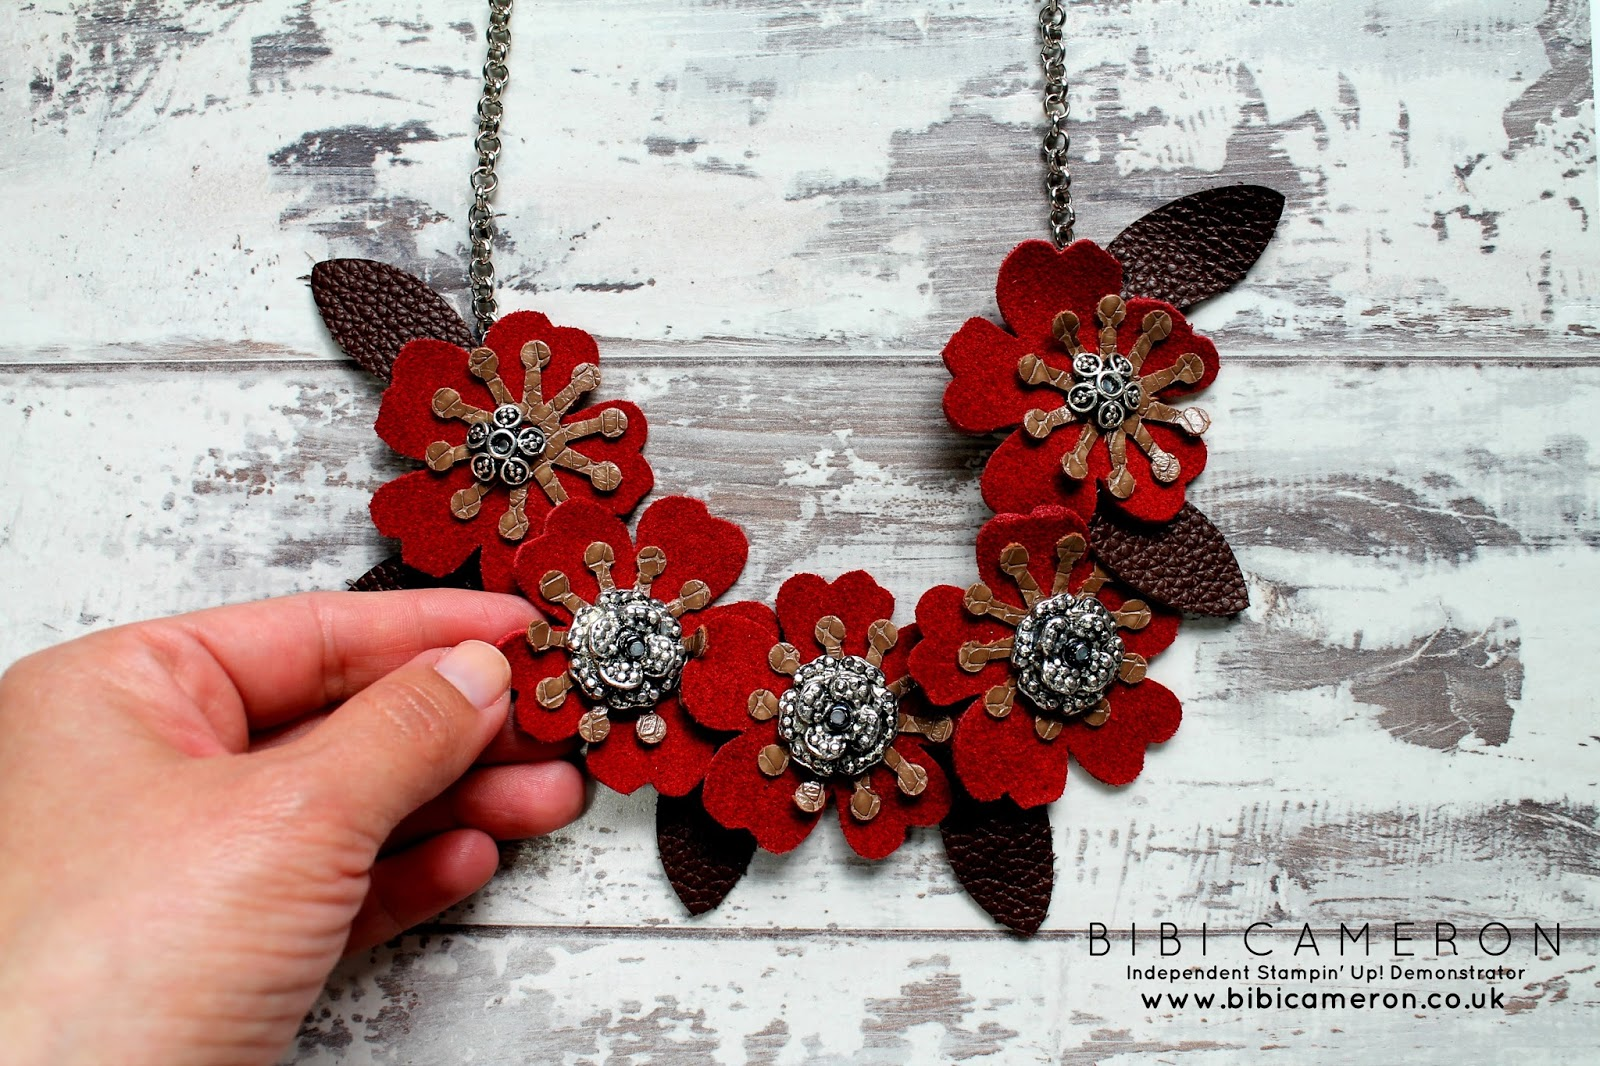 Stampin Up Bouquet Bigz L die to make a leather necklace or accessories for Harris tweed products